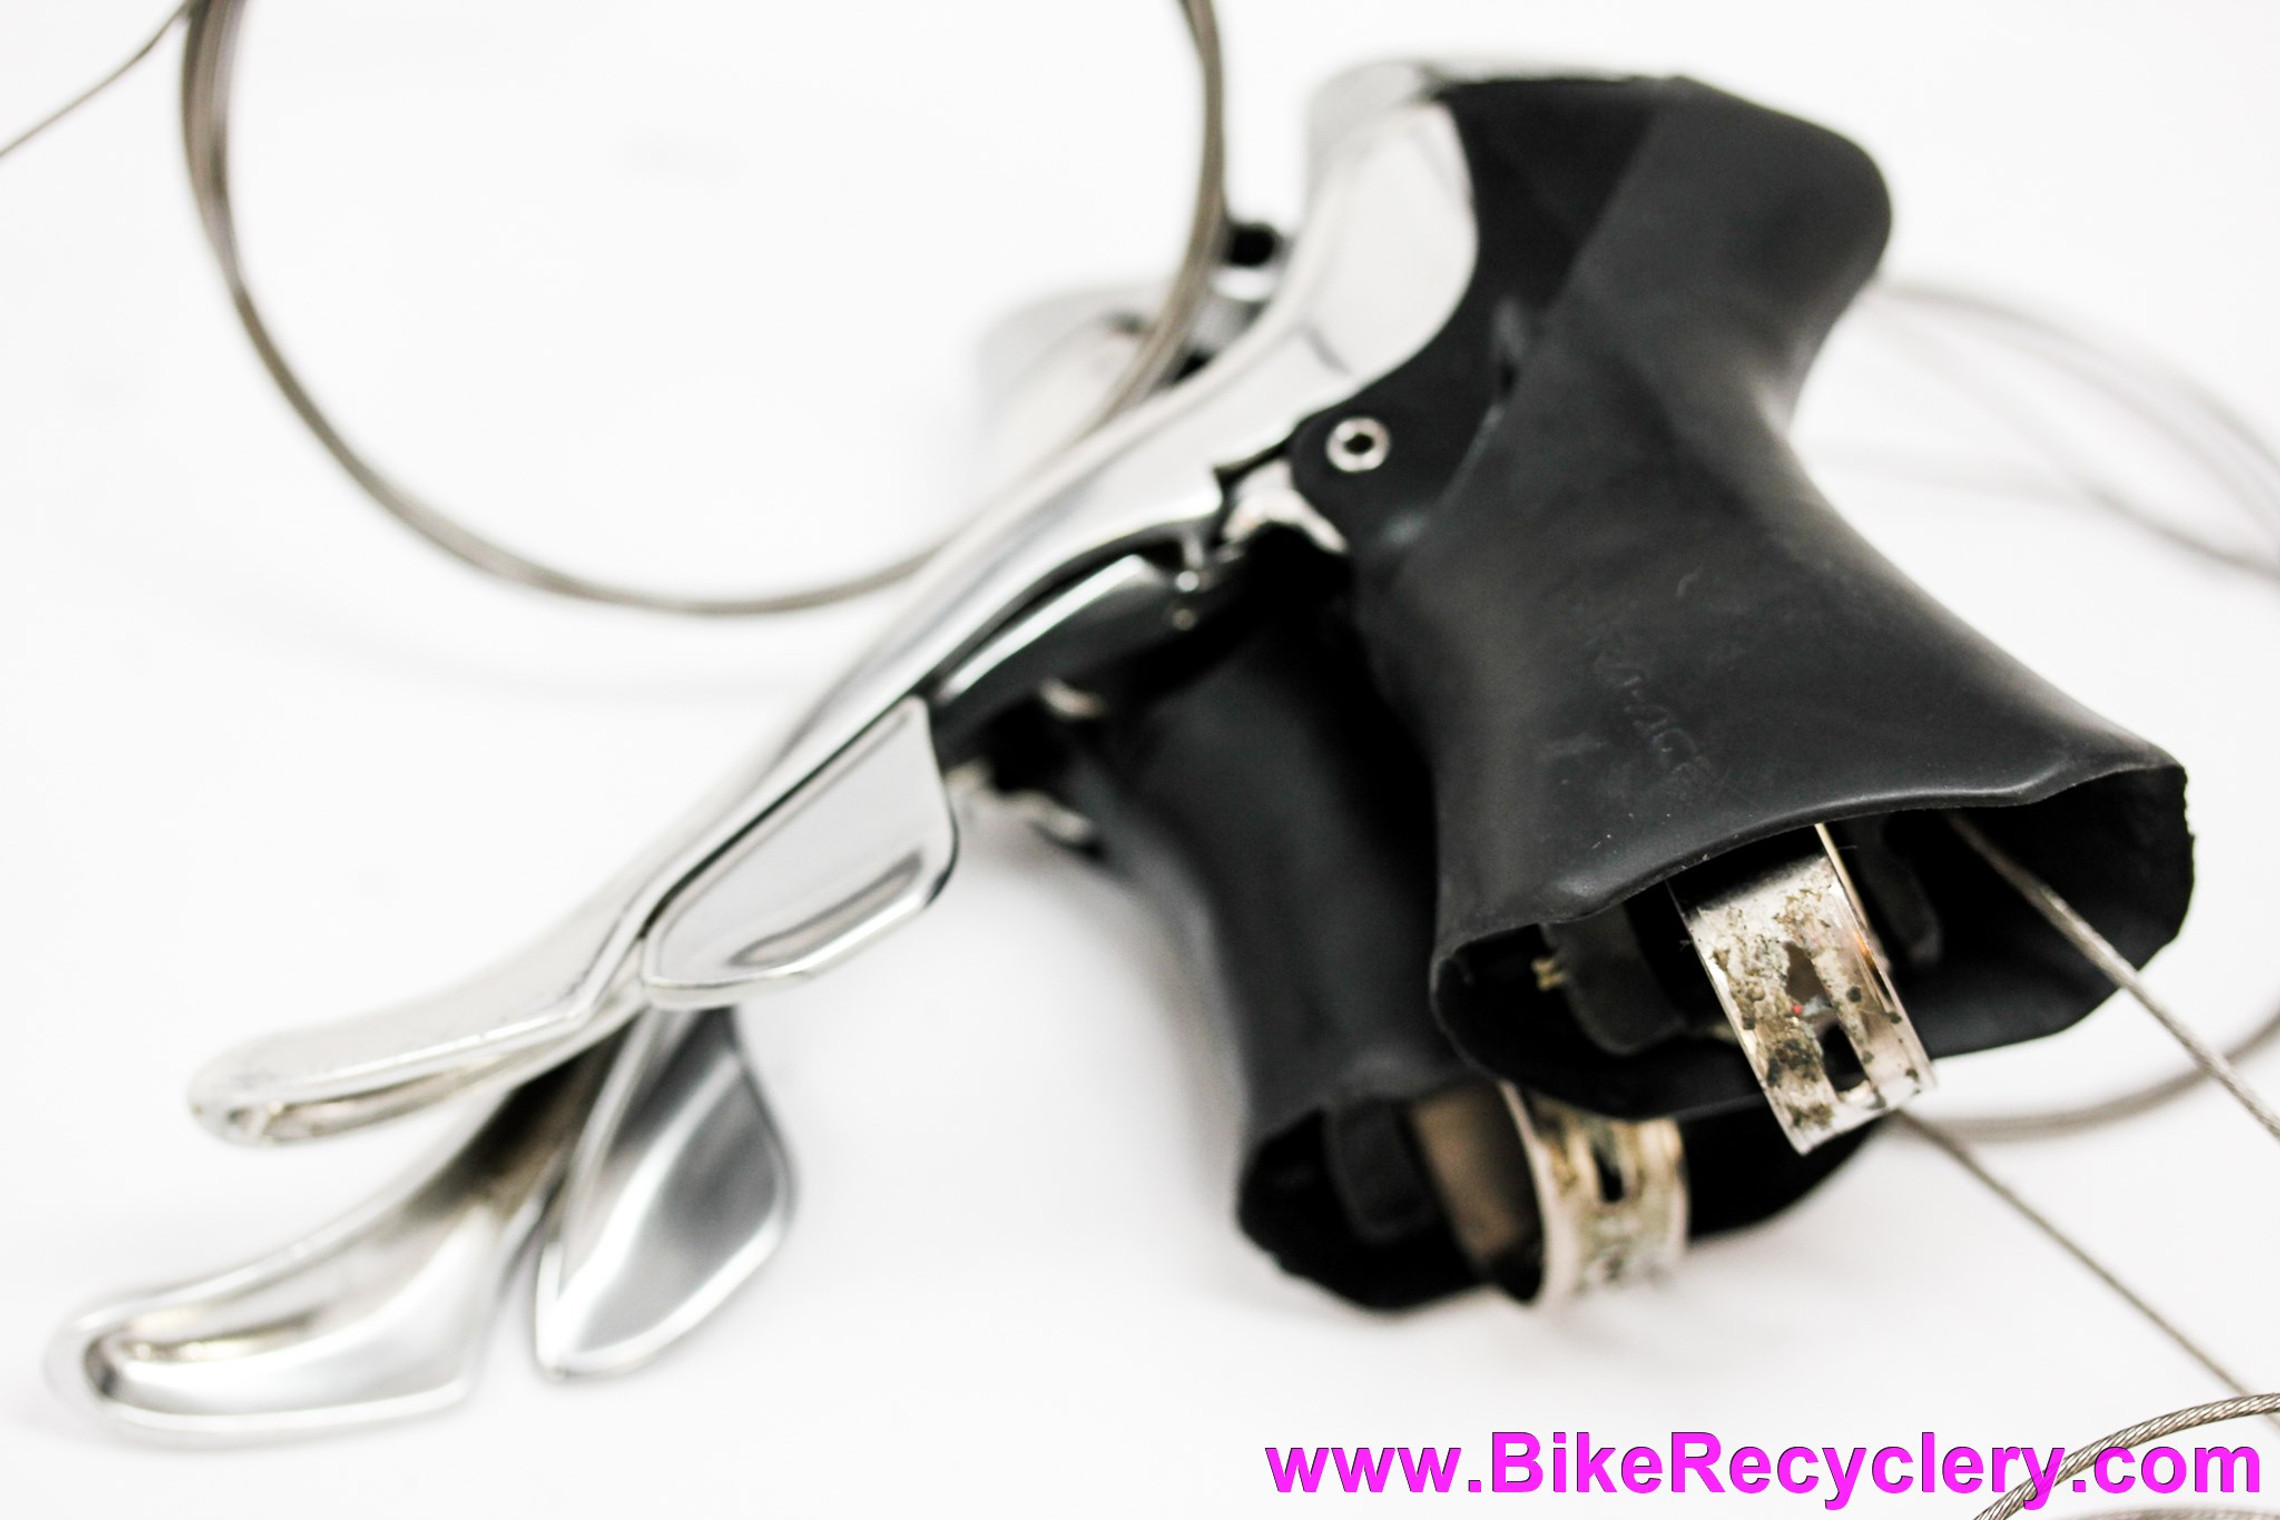 Shimano Dura Ace ST-7700 STI Shifters: 9 Speed Double Non-Flightdeck - Engraved Faceplates V1 (EXC-Near Mint)